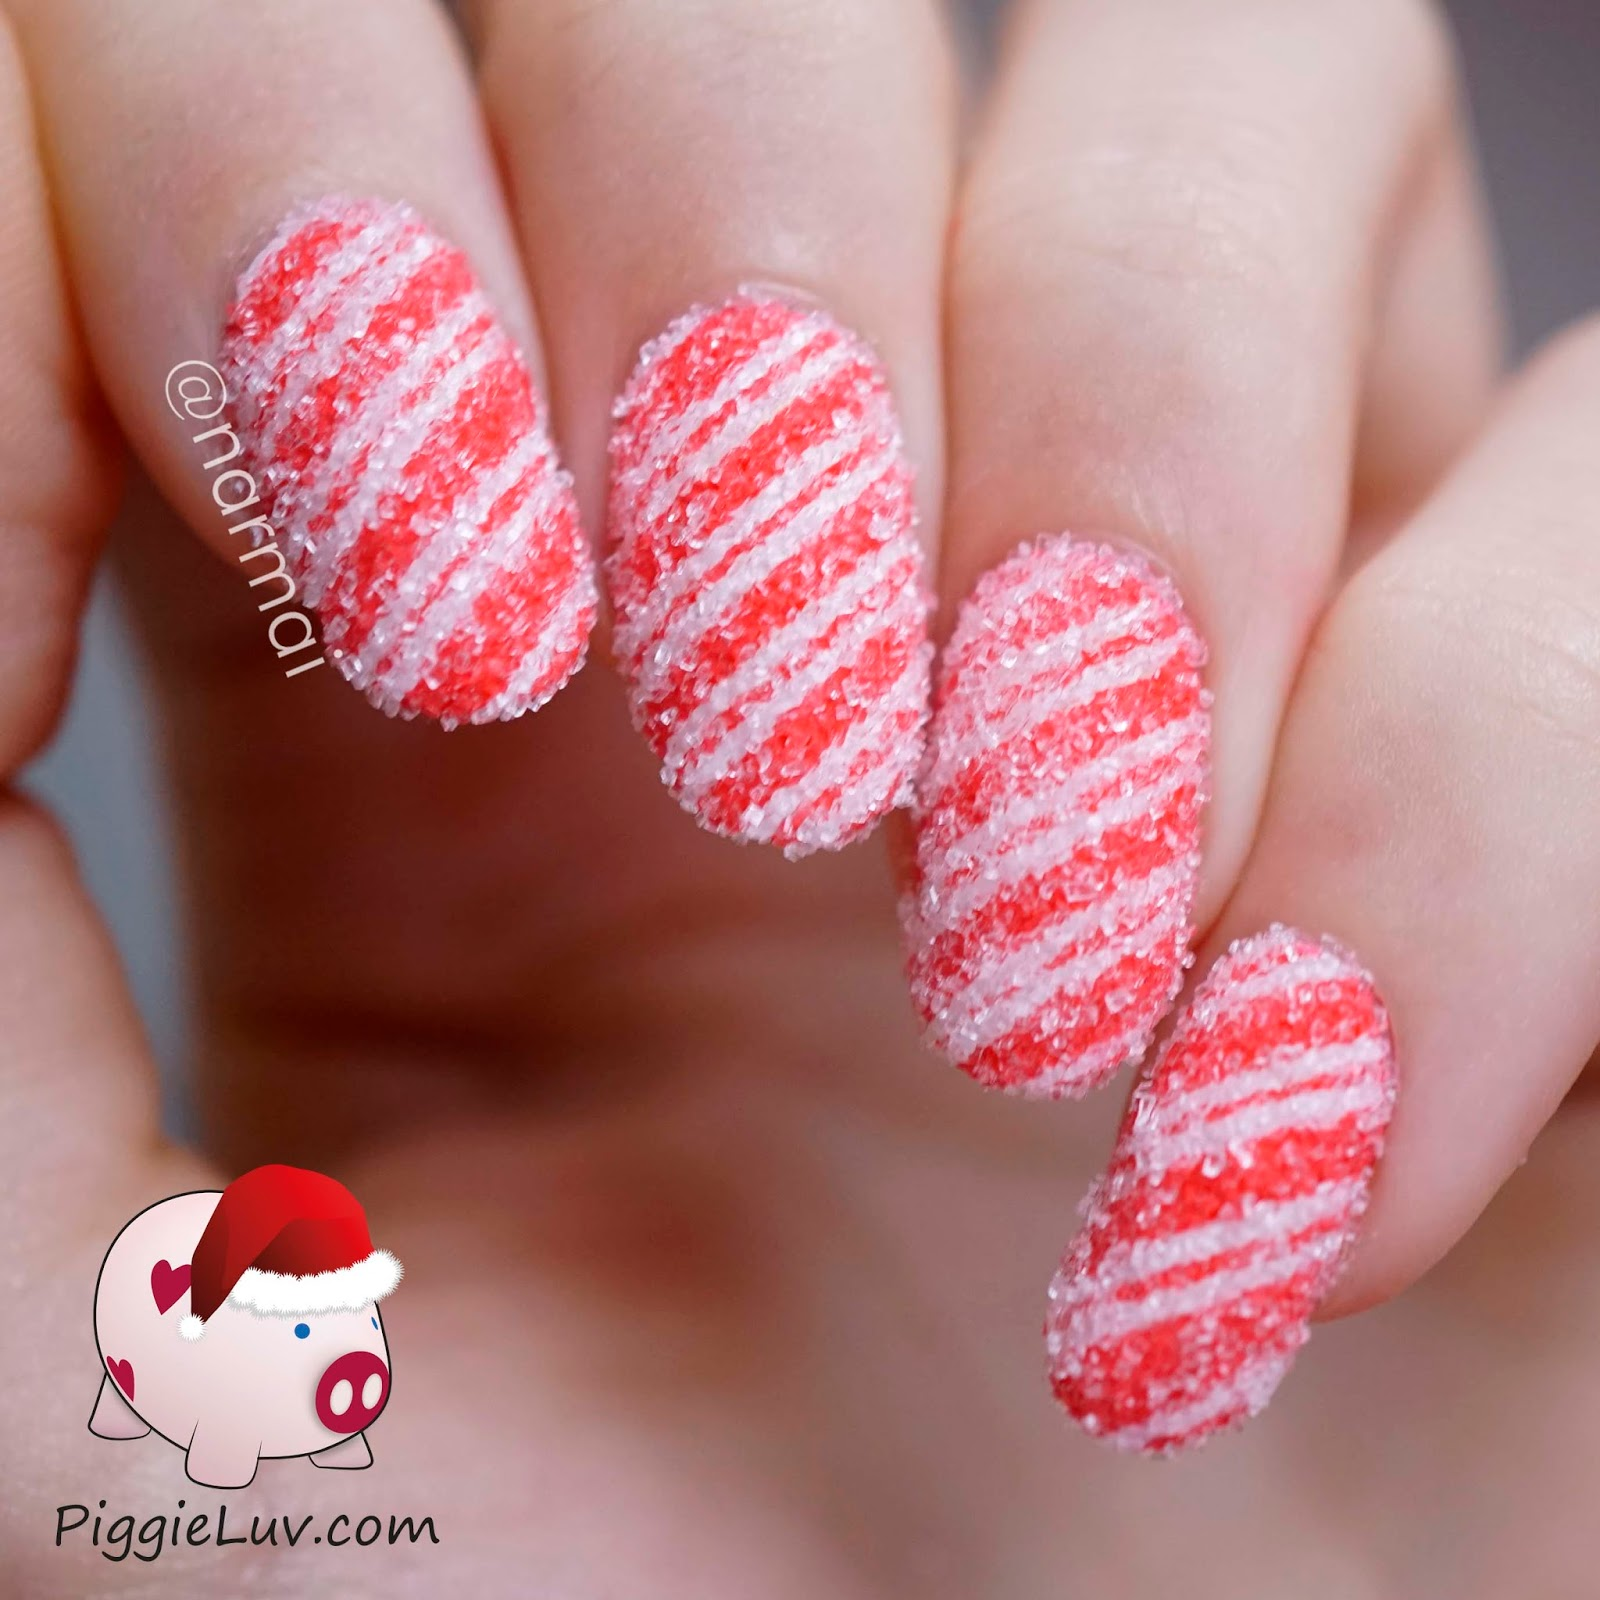 Piggieluv sugared candy canes nail art video tutorial i made this design using striping tape i thought it would look like candy canes but they actually remind me more of those peppermint cushion candies prinsesfo Choice Image